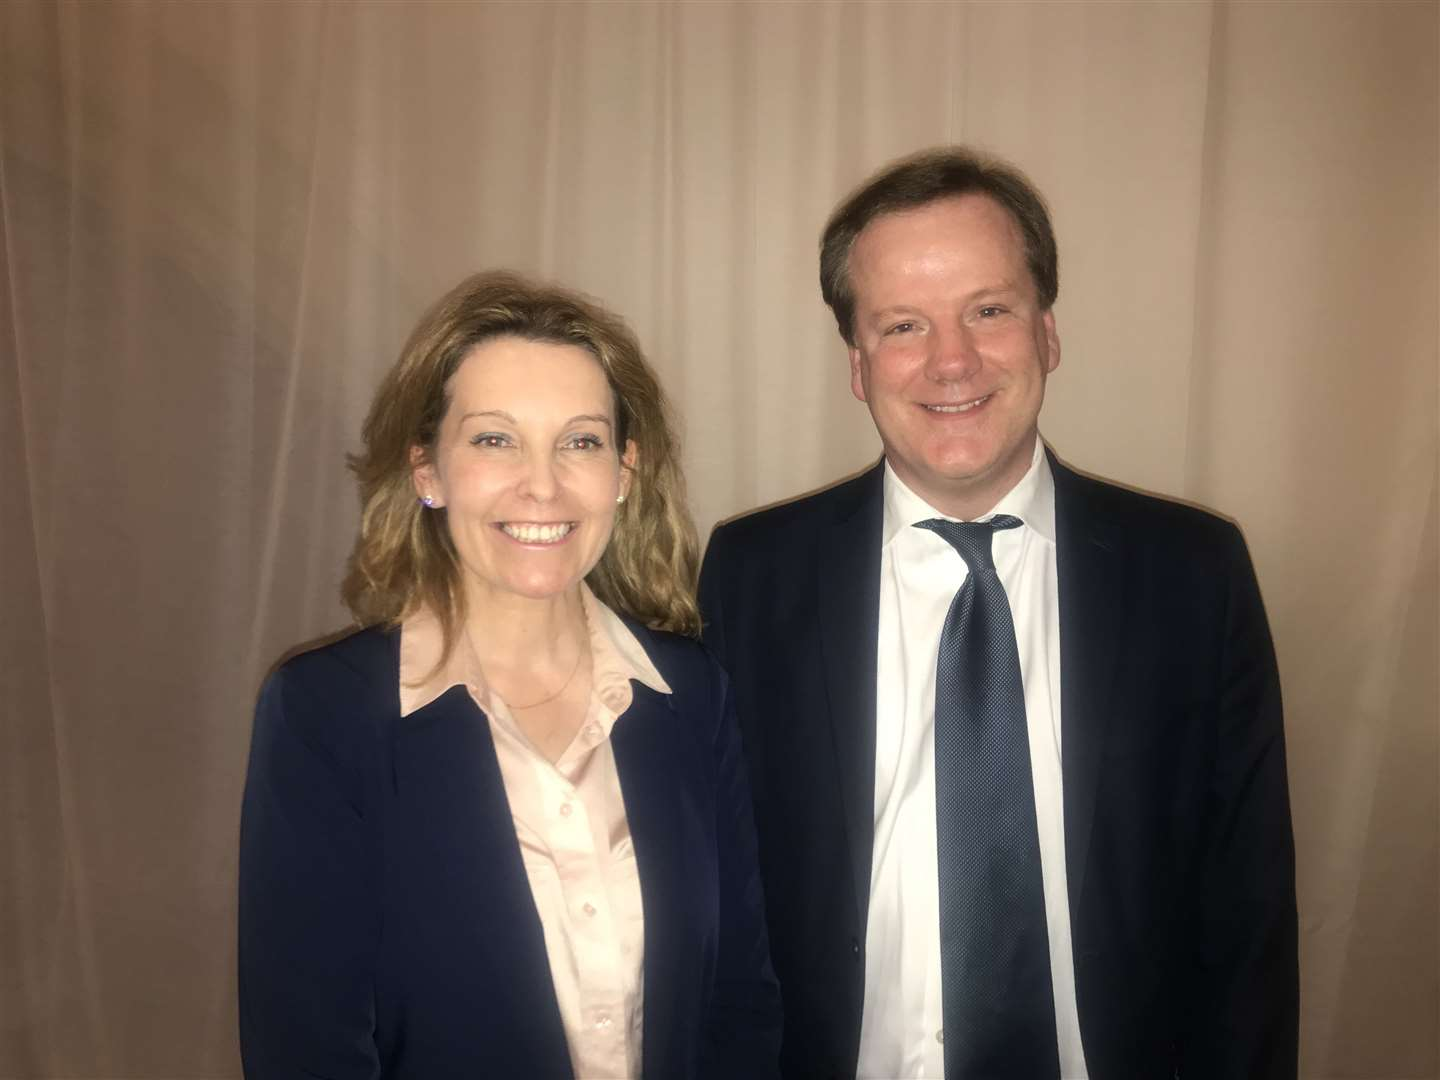 Dover and Deal's new MP Natalie Elphicke with husband and former MP Charlie Elphicke